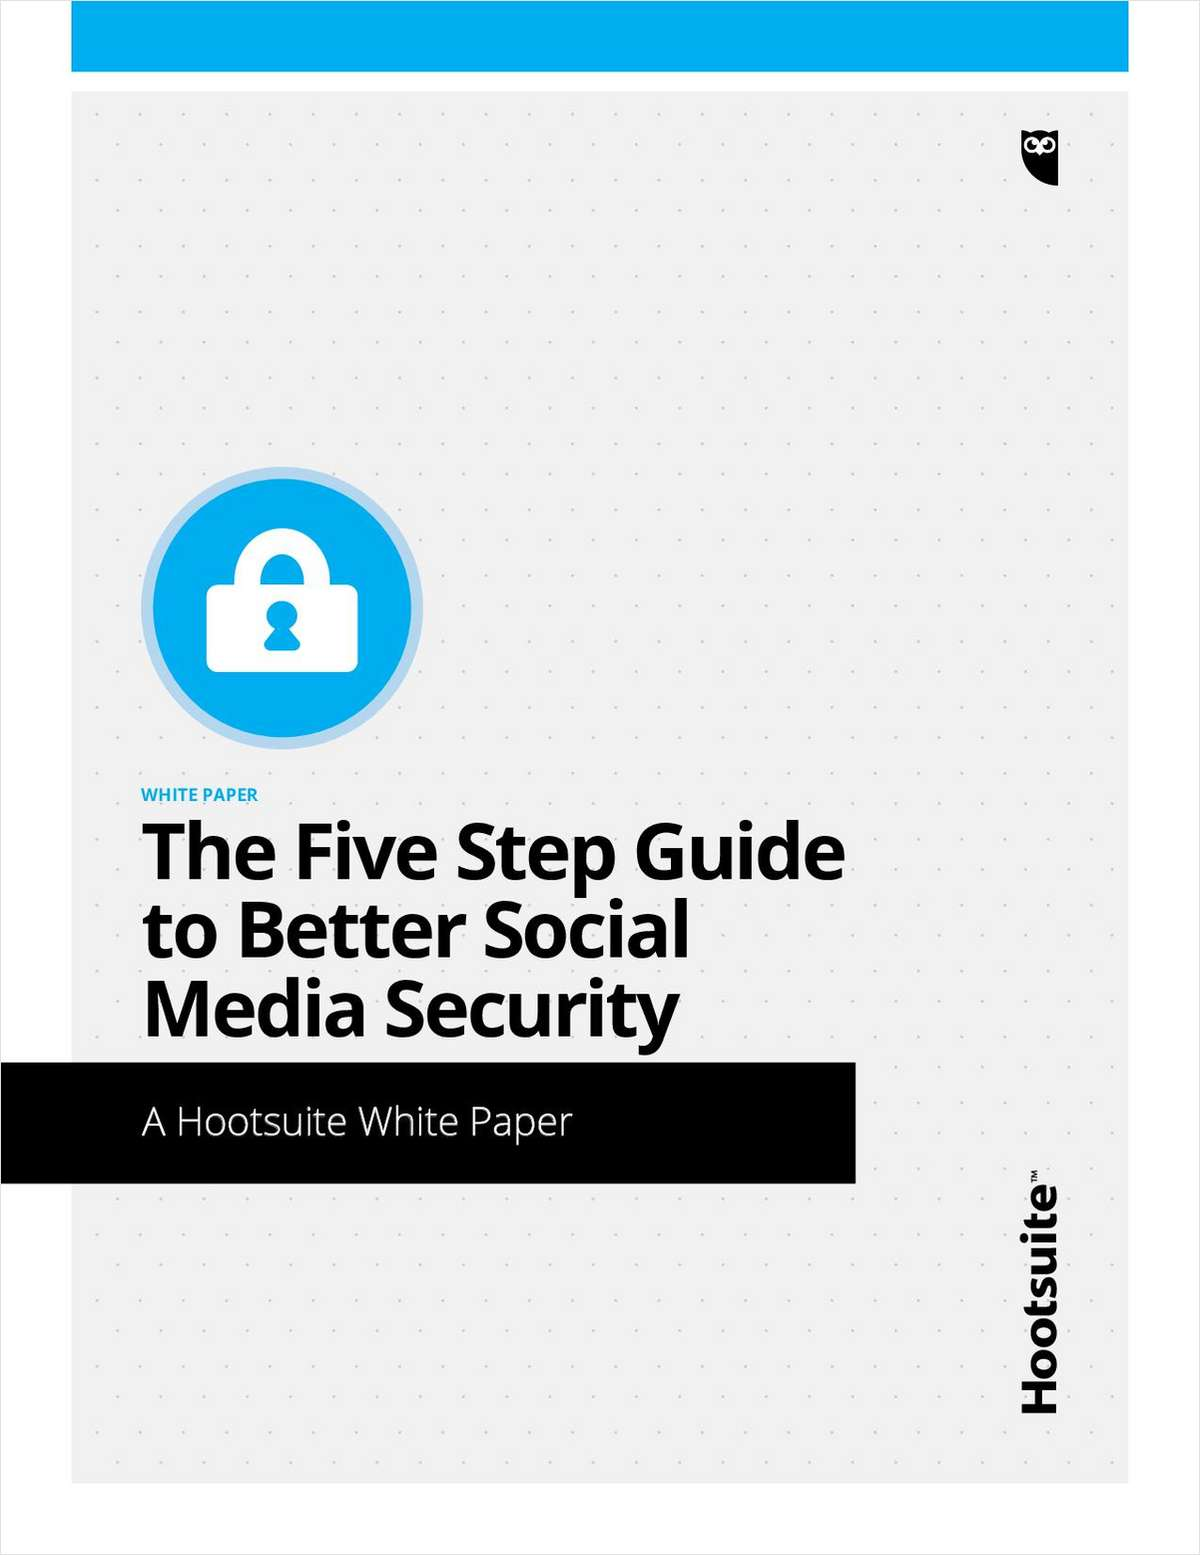 The Five Step Guide to Better Social Media Security